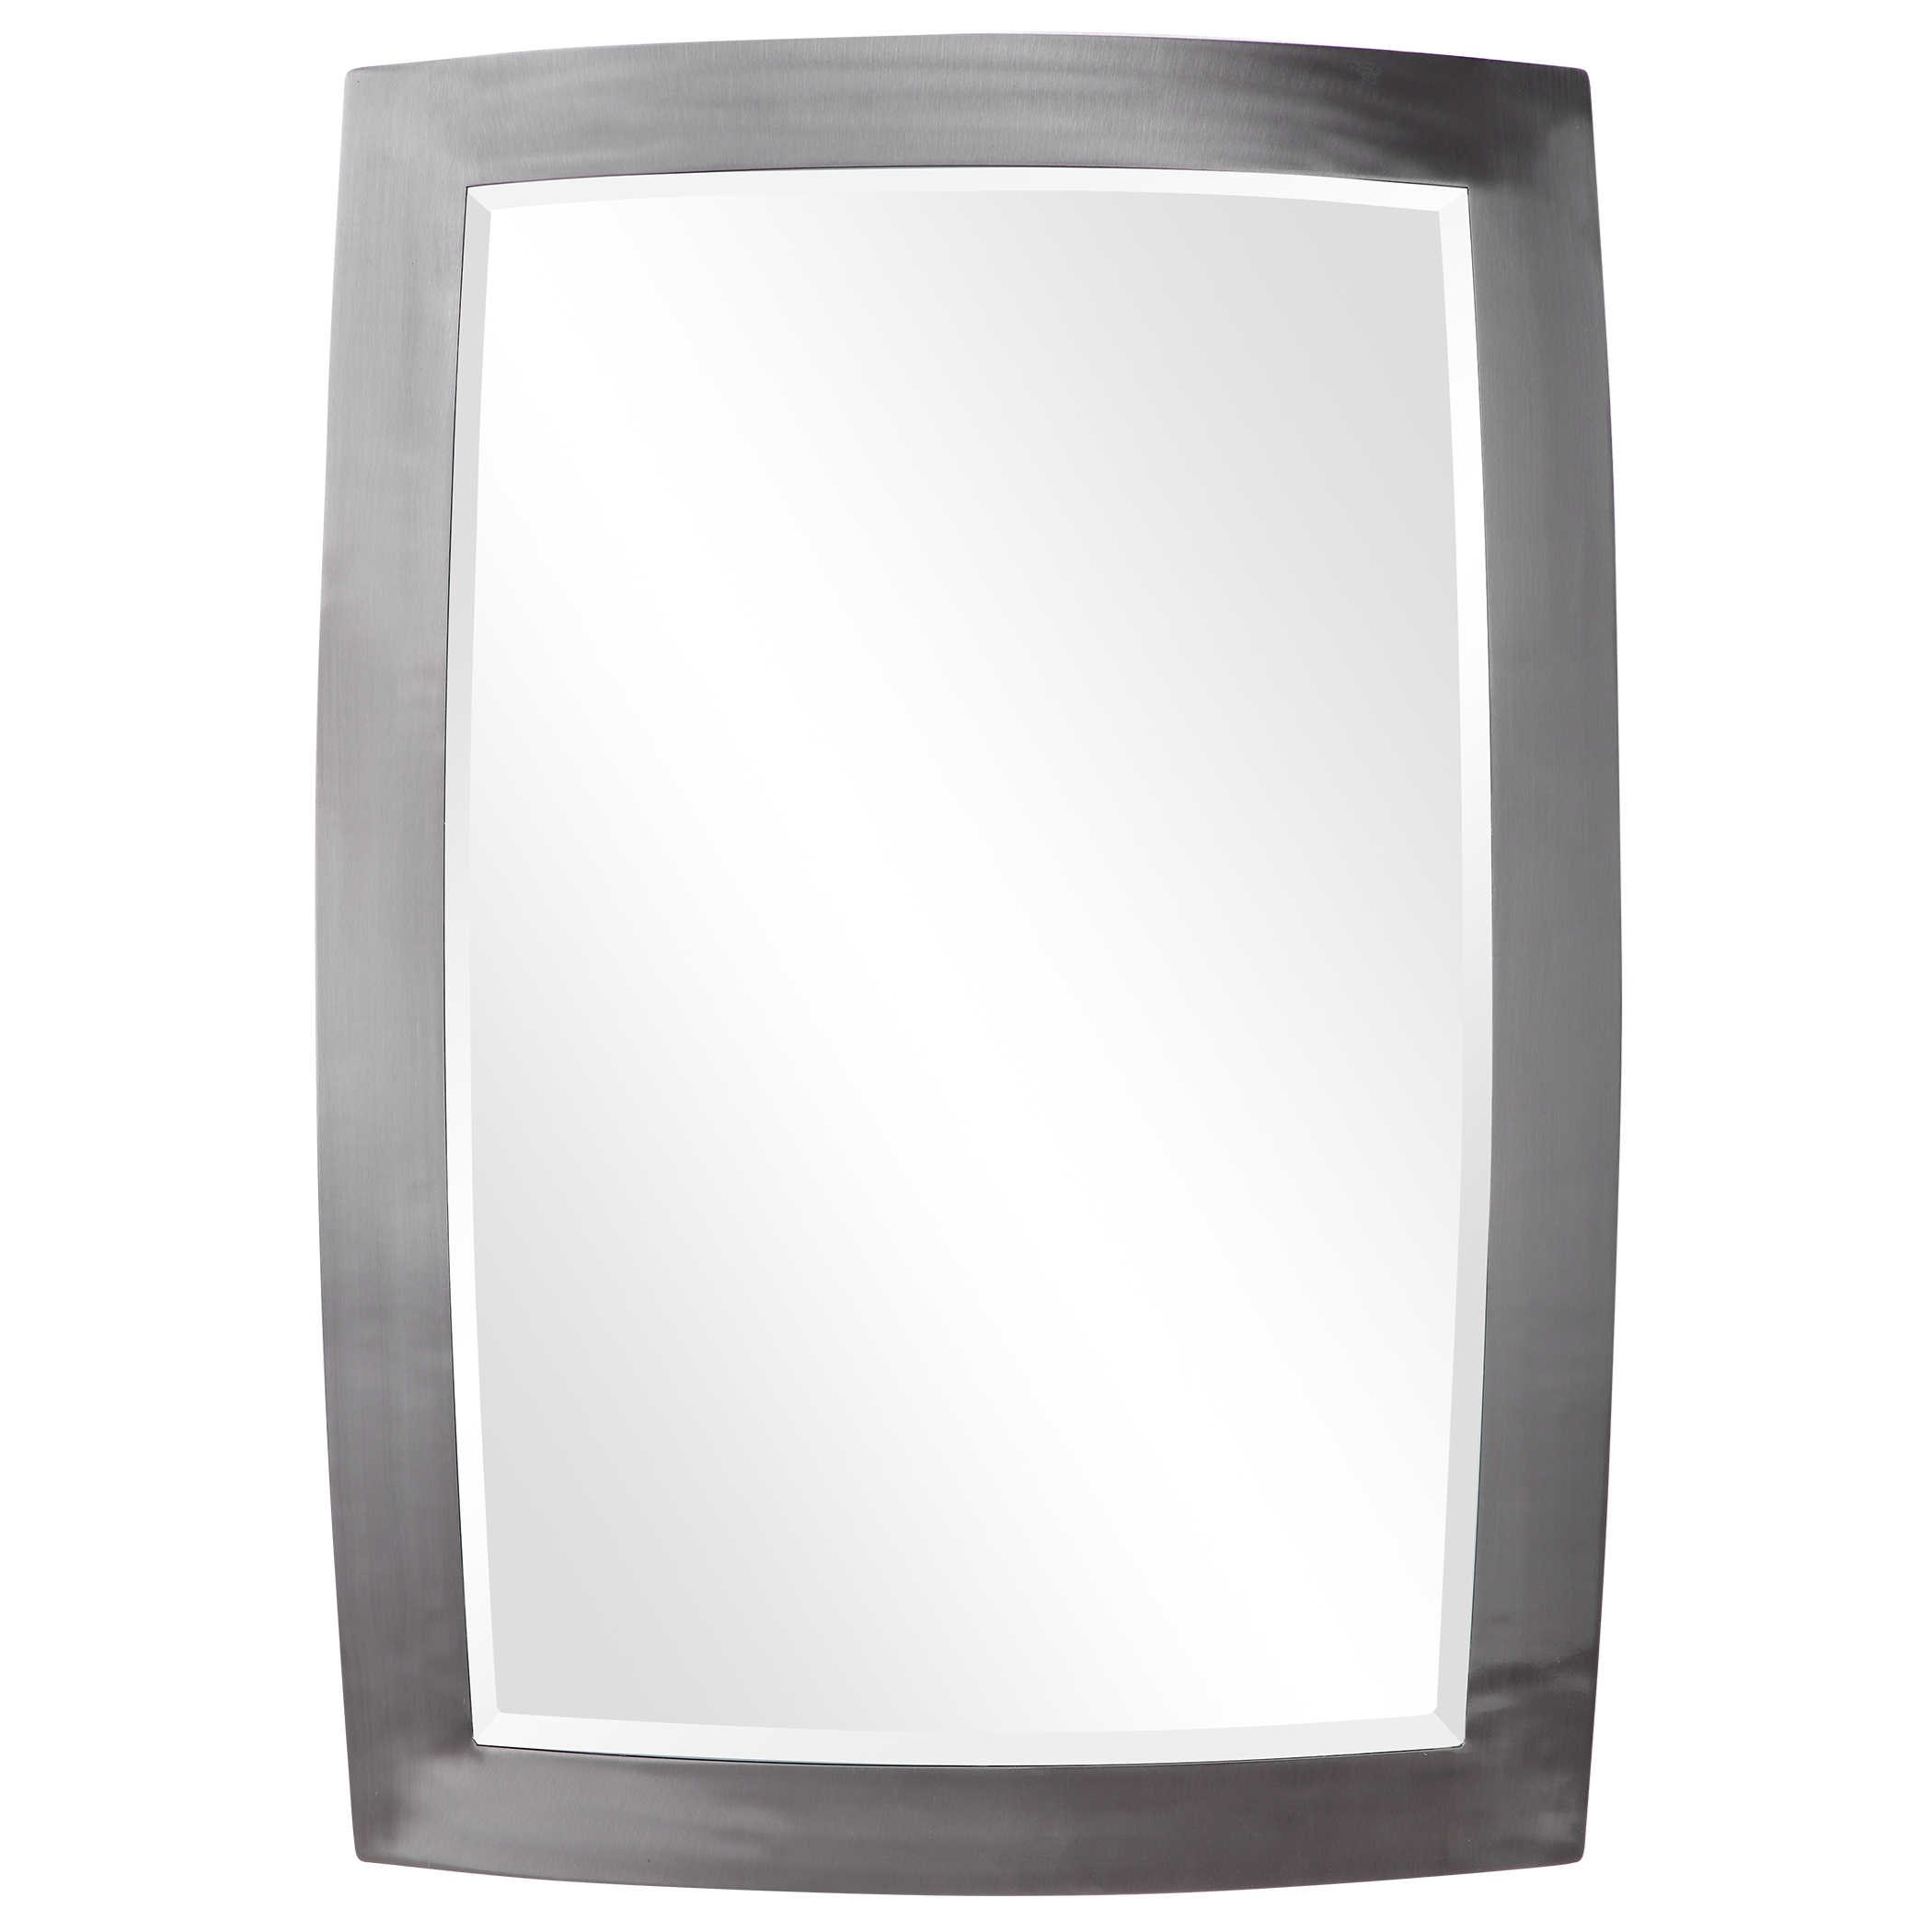 Haskill Brushed Nickel Mirror